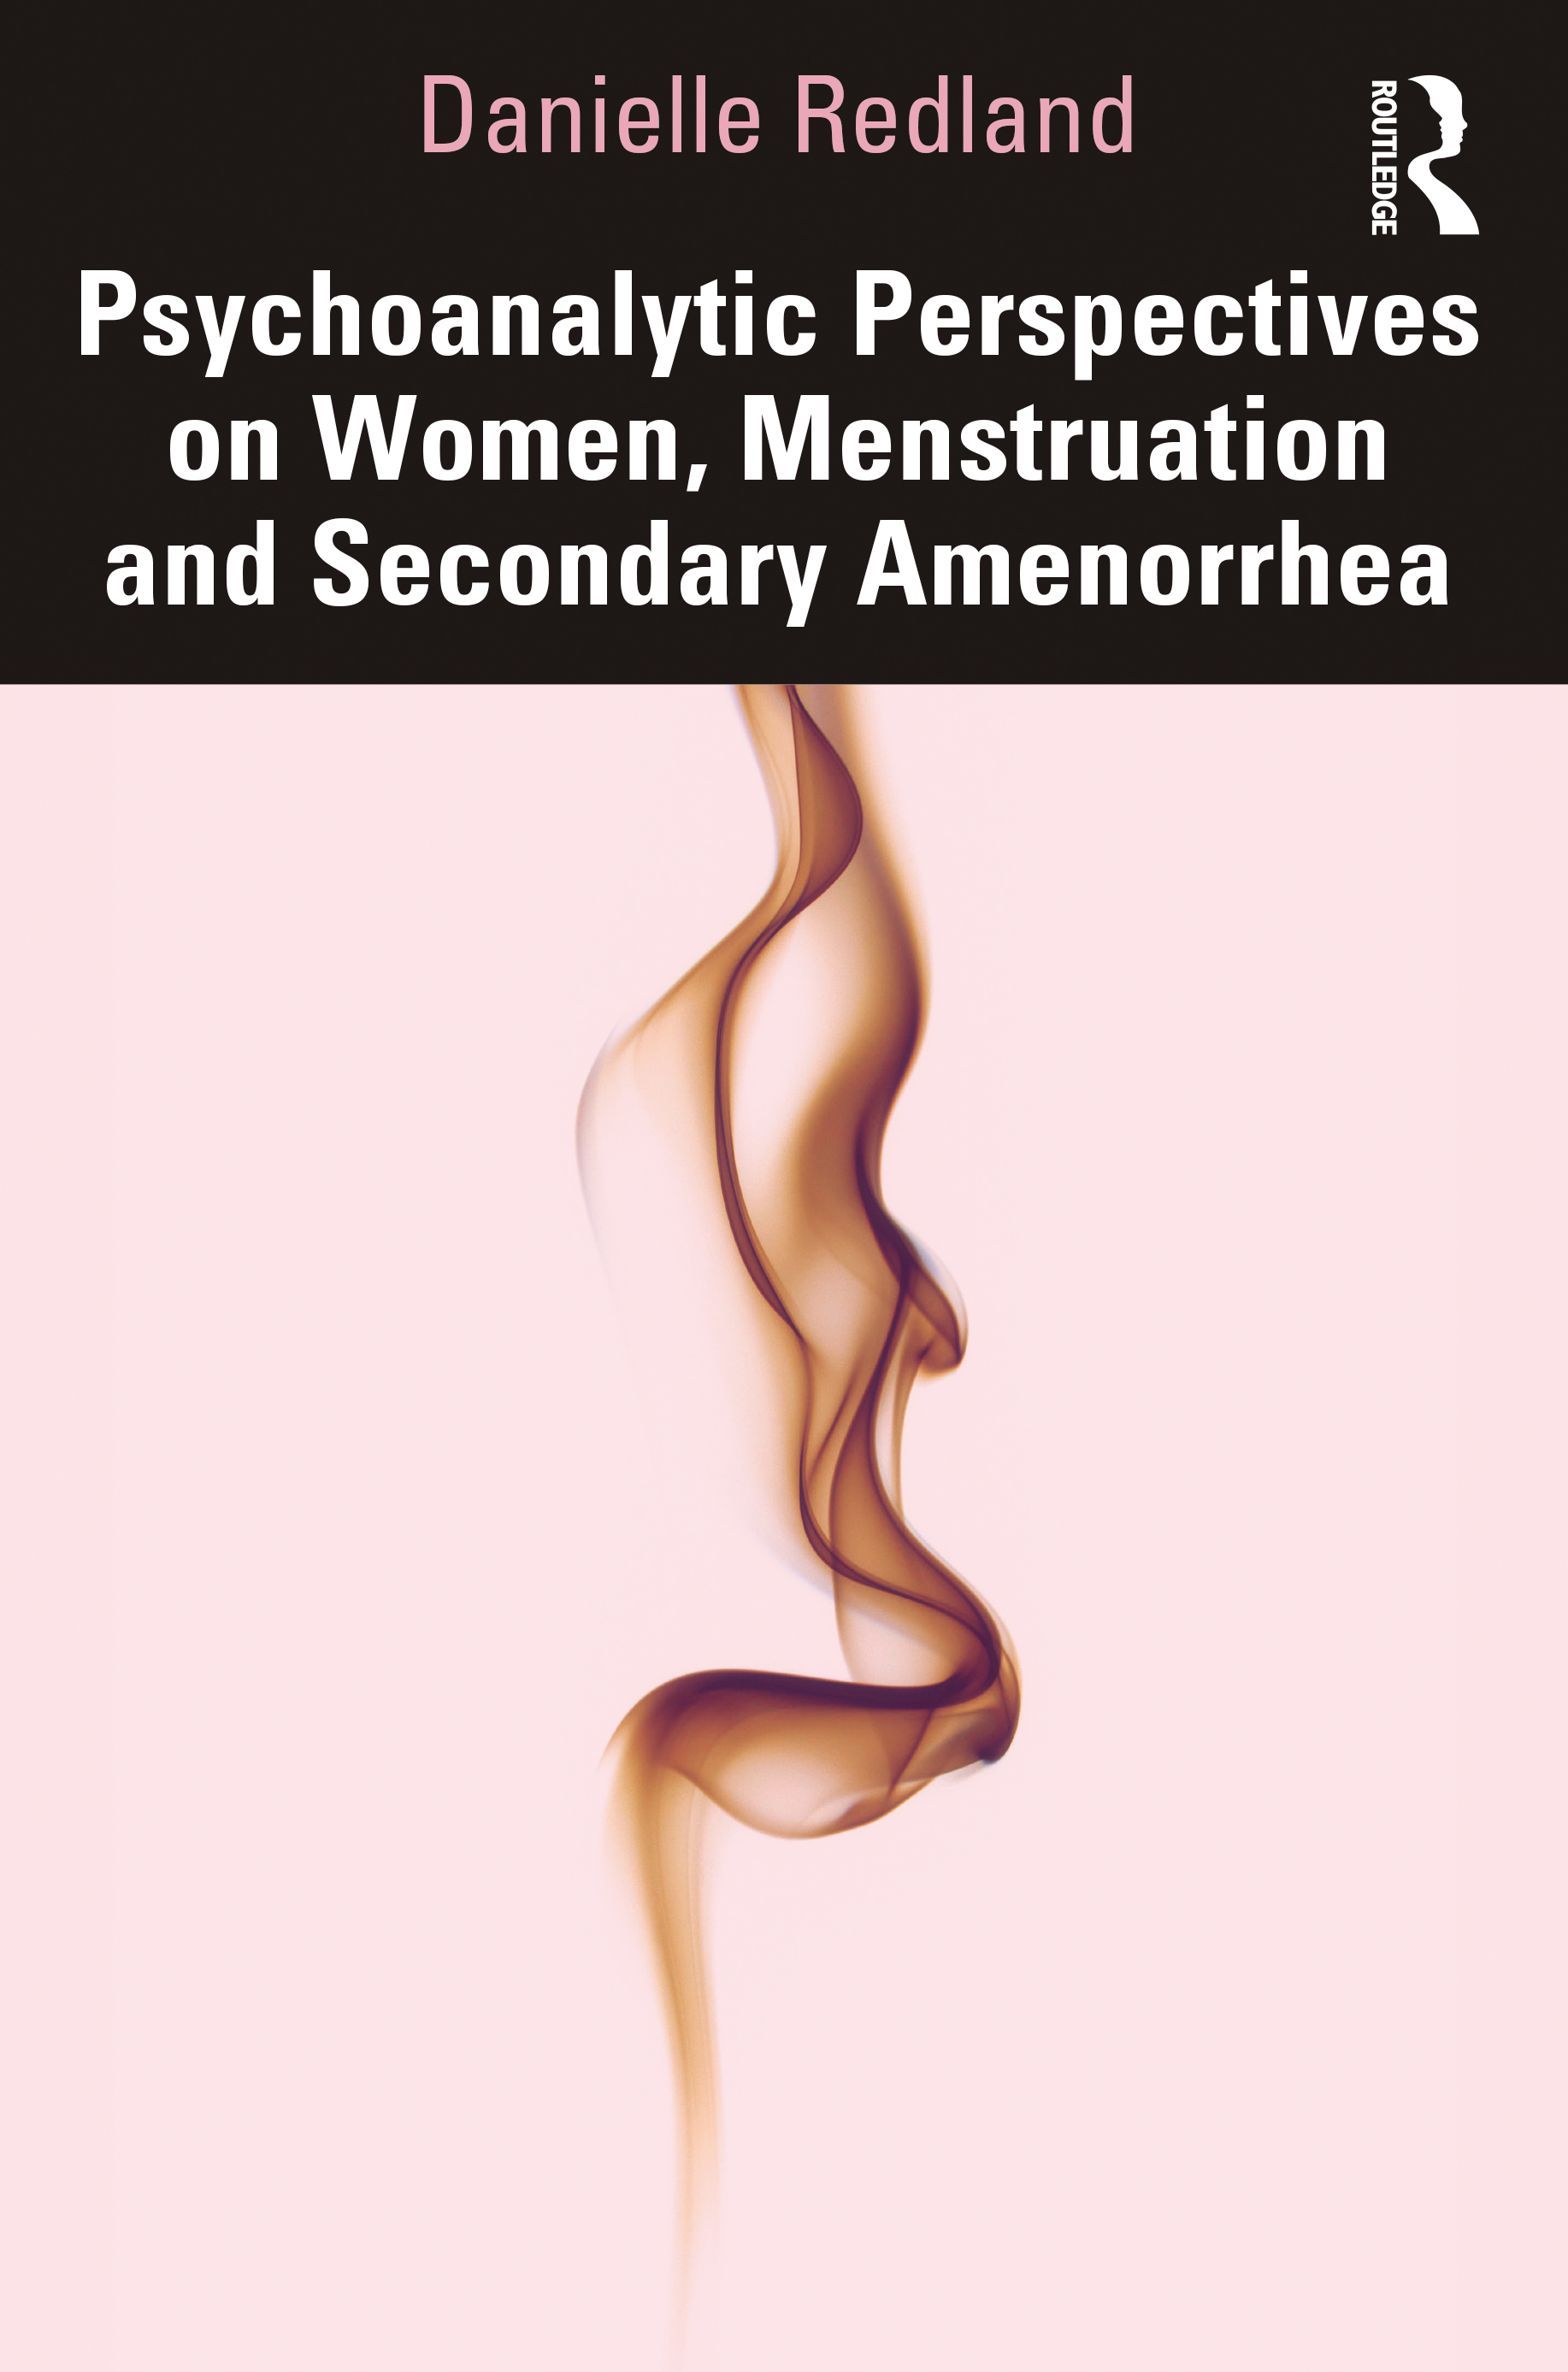 Psychoanalytic Perspectives on Women, Menstruation and Secondary Amenorrhea